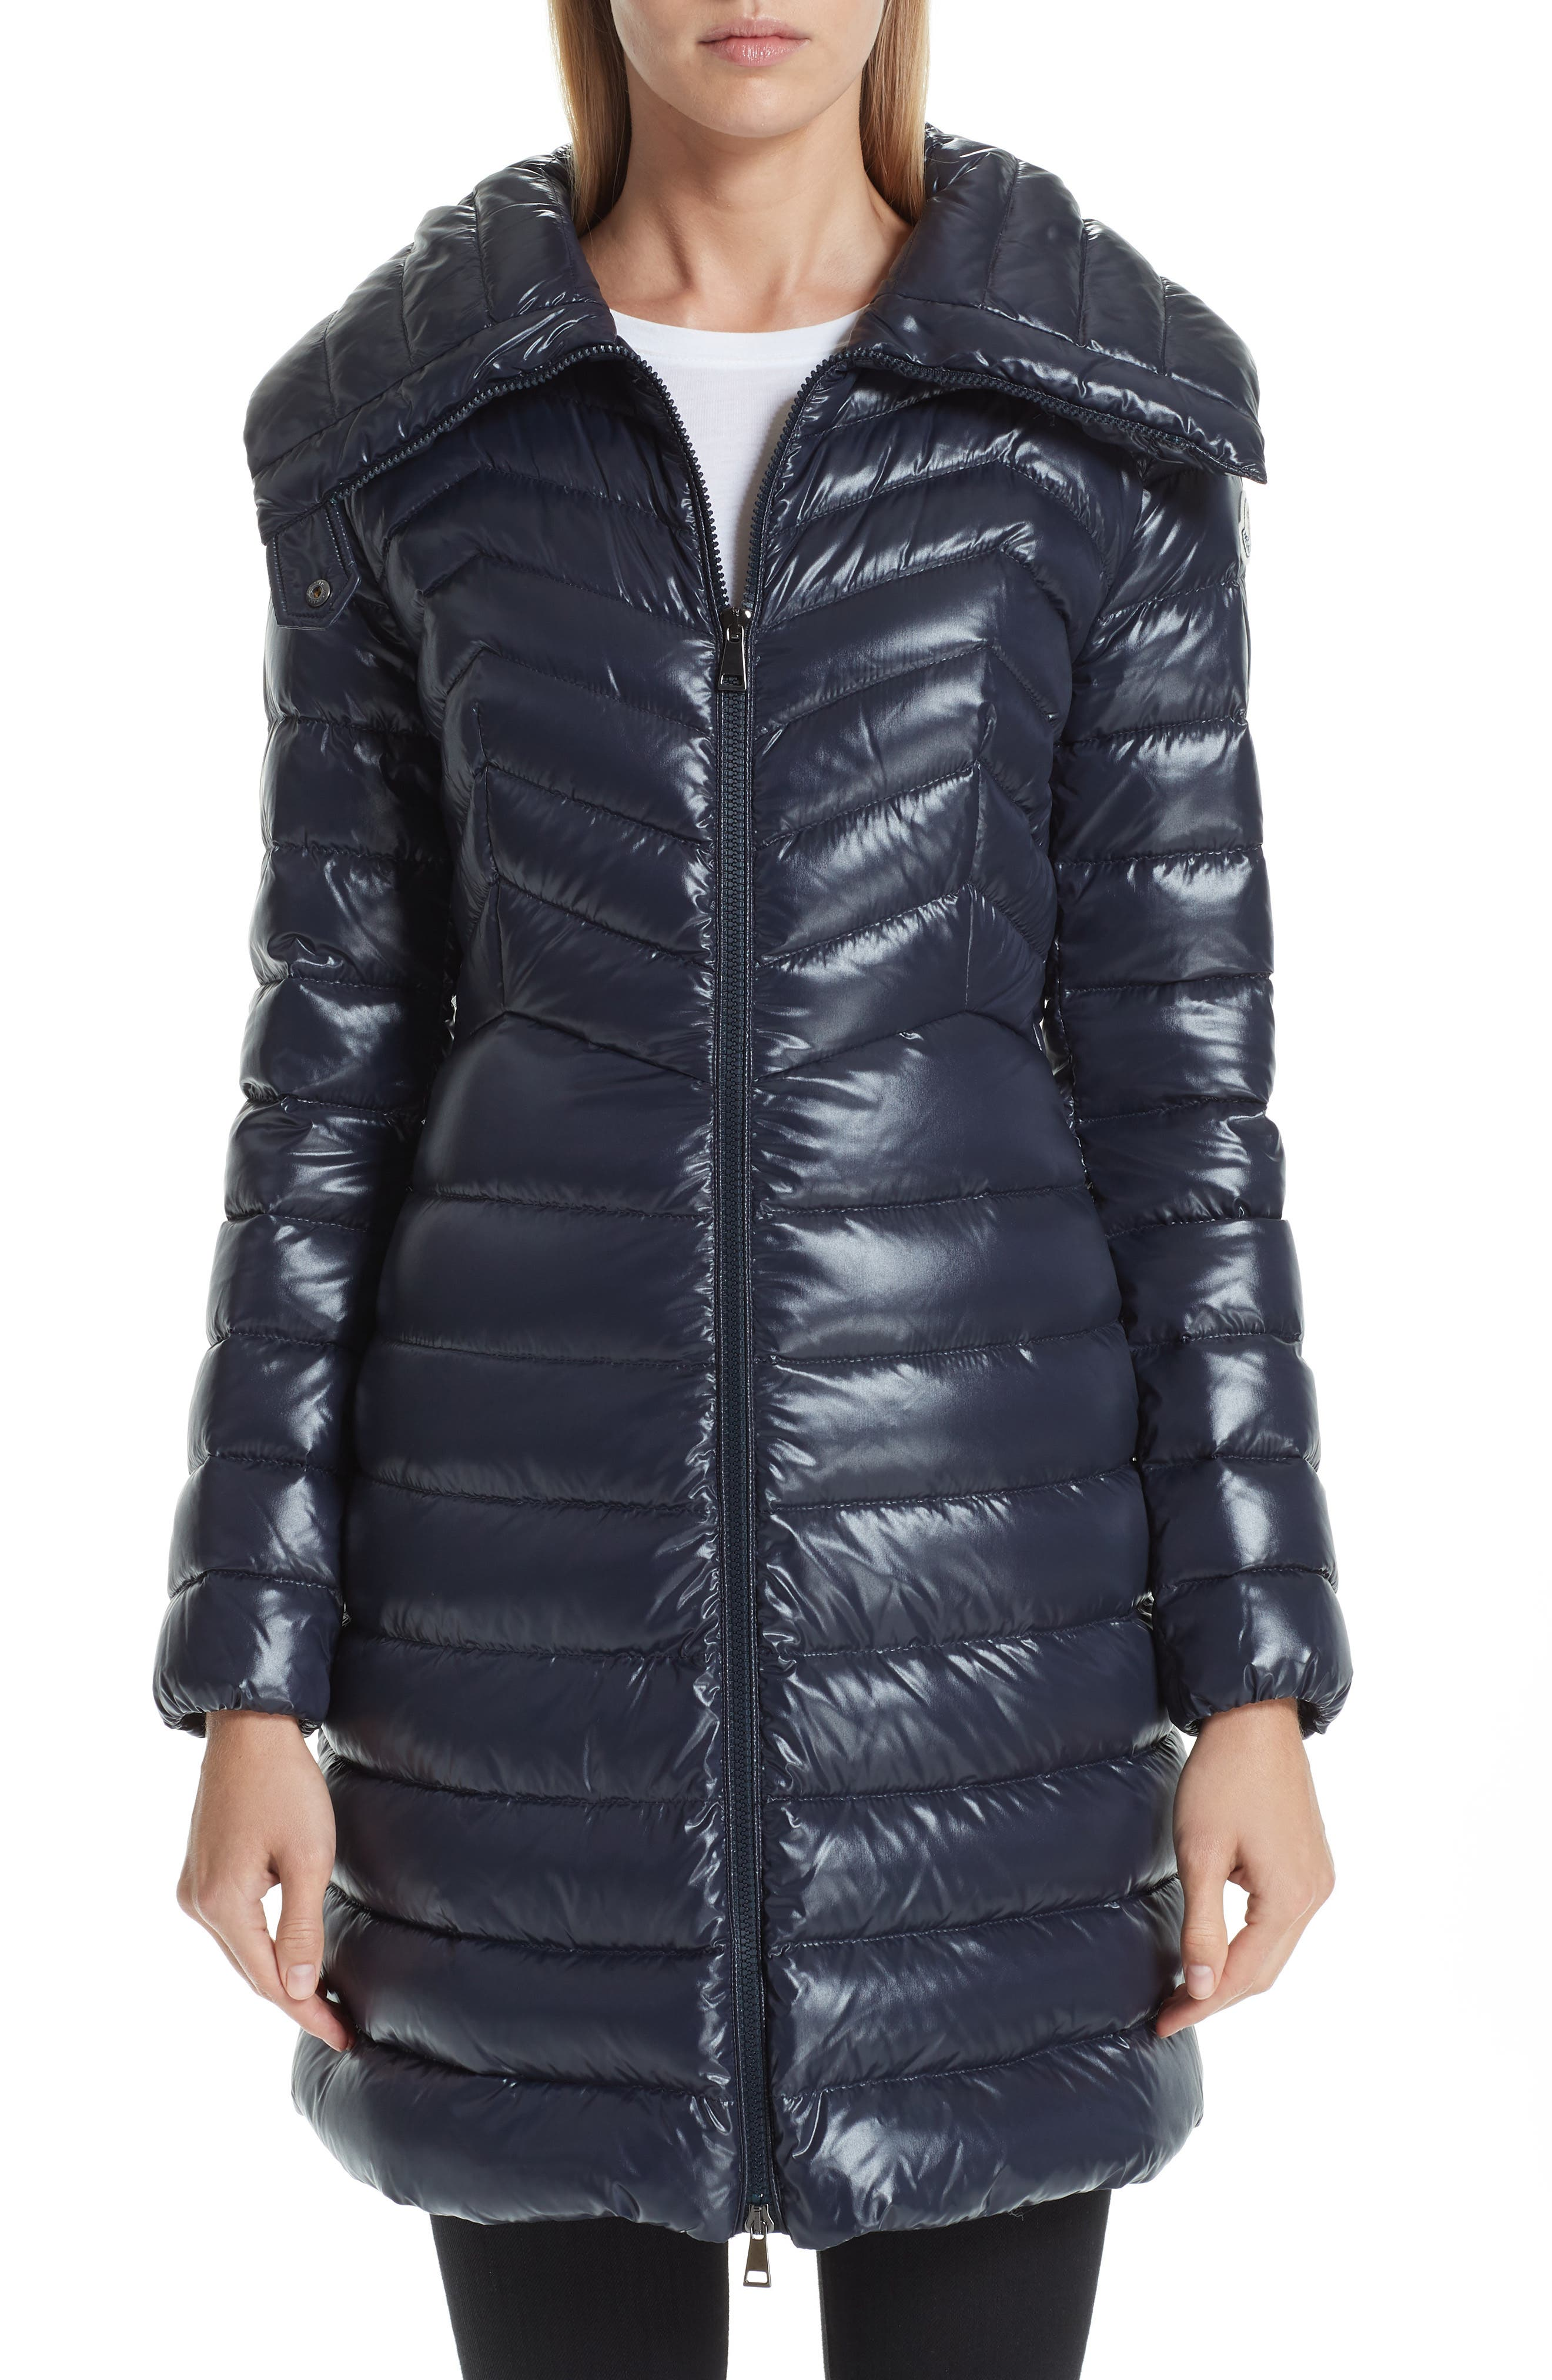 MONCLER, Faucon Quilted Down Coat, Main thumbnail 1, color, NAVY